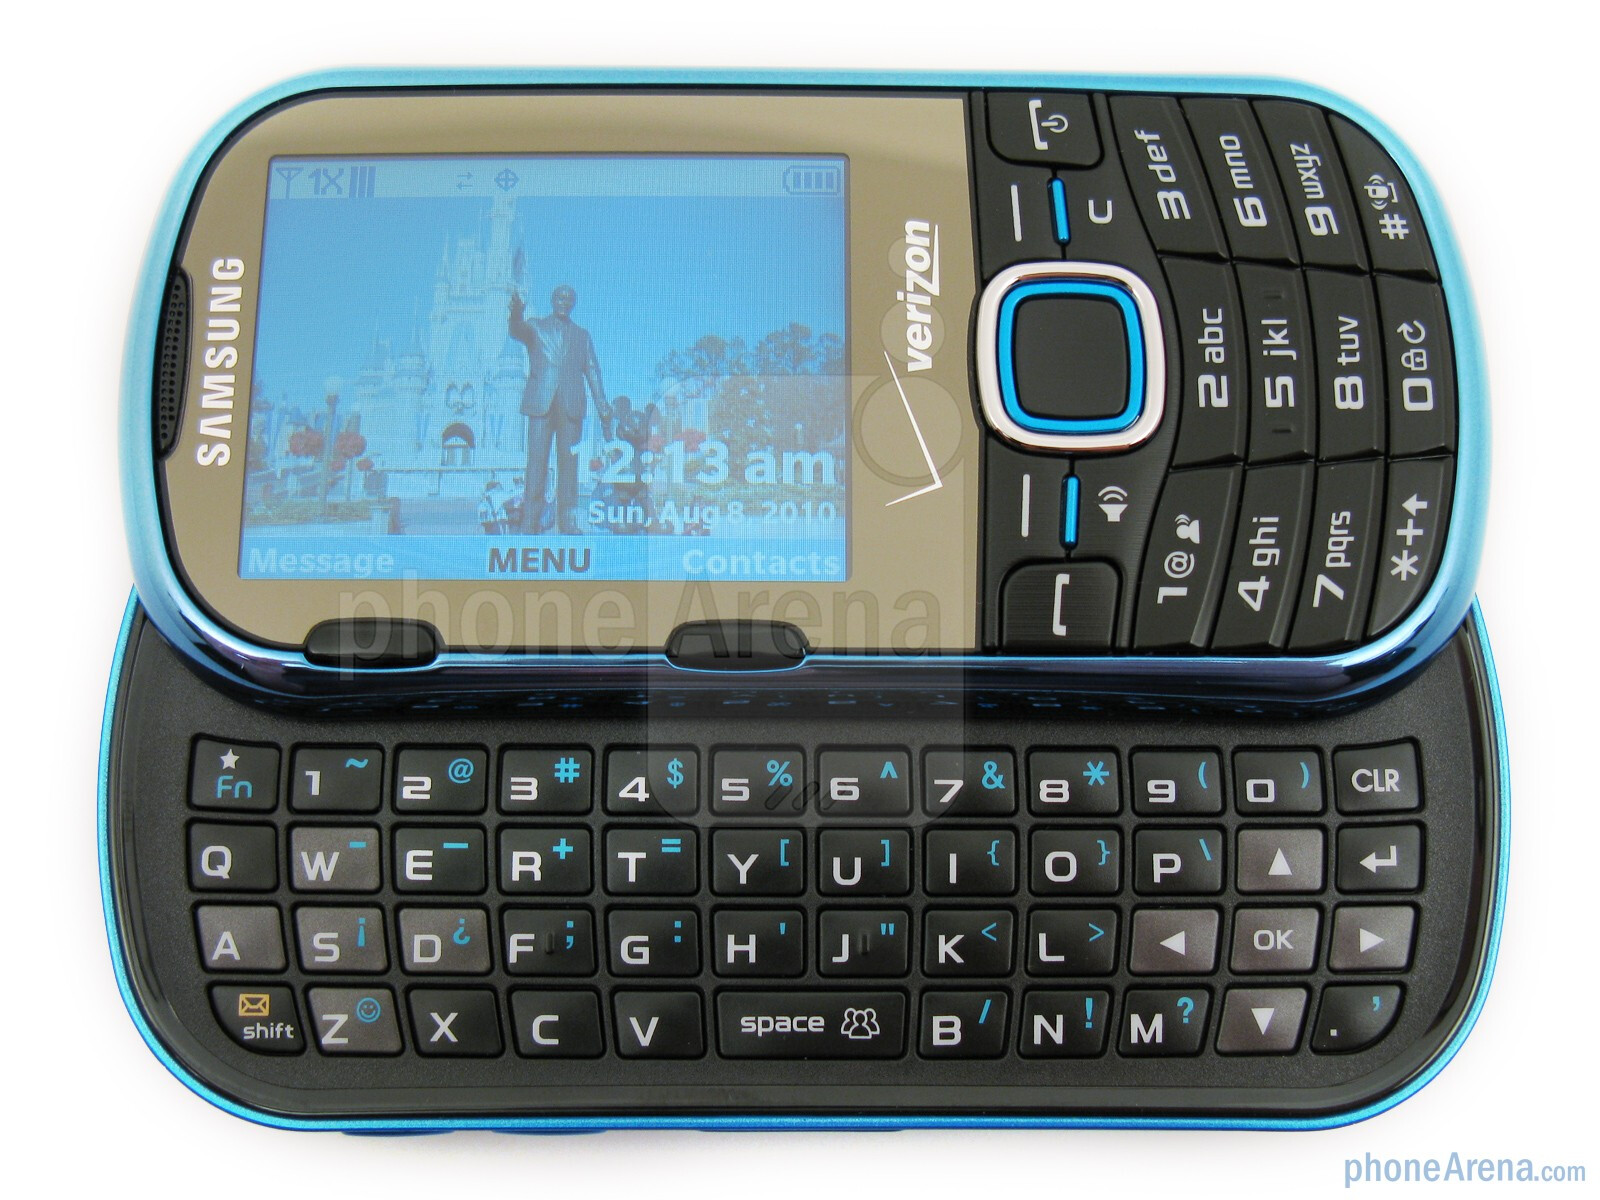 samsung intensity ii review rh phonearena com Samsung Phones with Slide Out Keyboard Samsung Razor Cell Phone